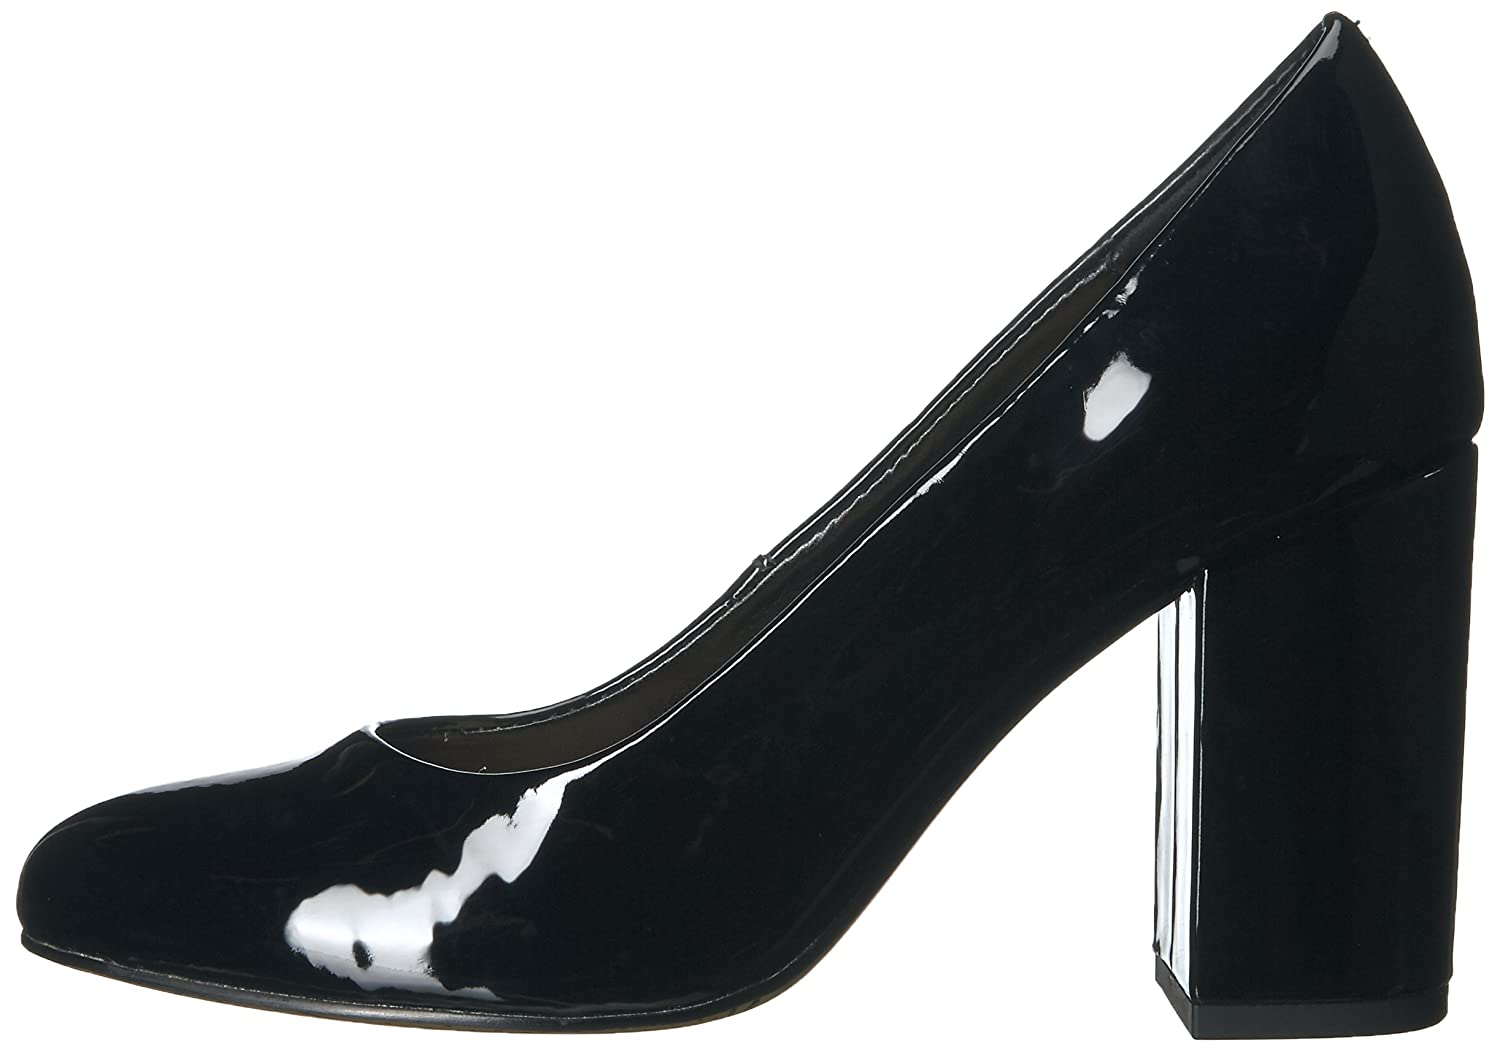 Bella Vita Women's Nara Ii Dress Pump B01NBNOG2P 7 W US|Black Patent